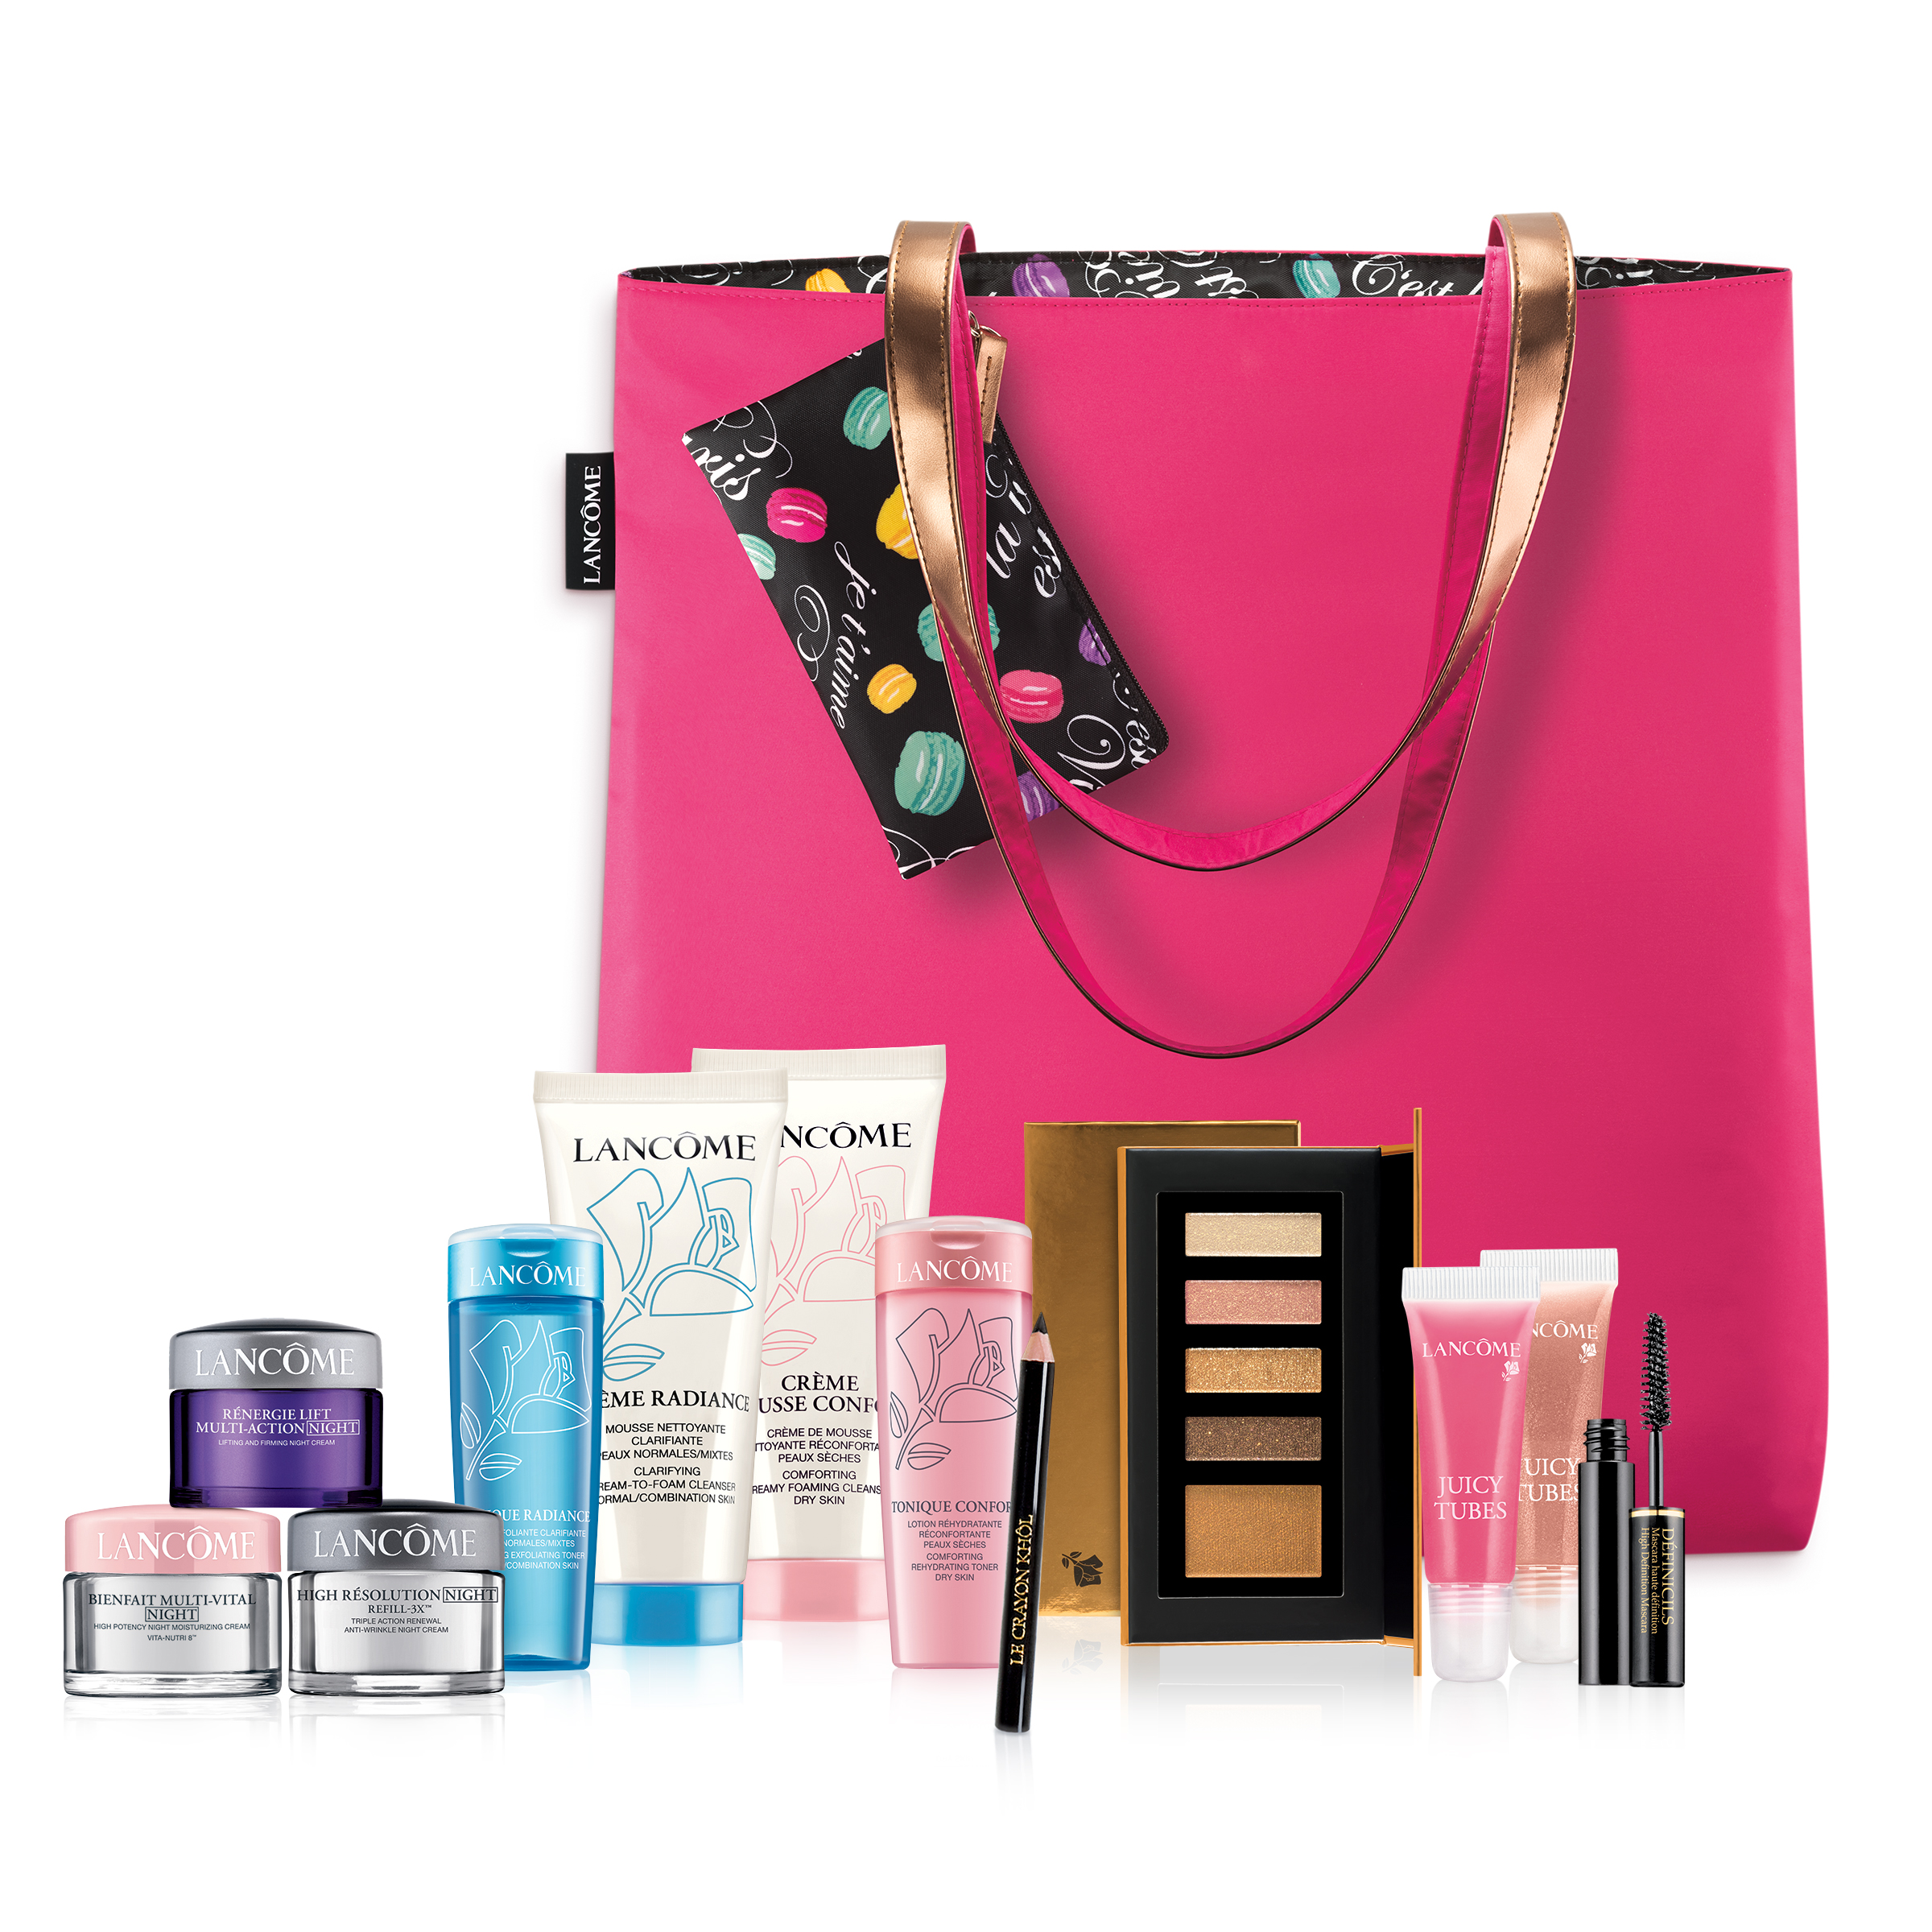 Free 6-piece Gift  (Value $53-$82)  with any $35 Lancôme purchase @ macys.com